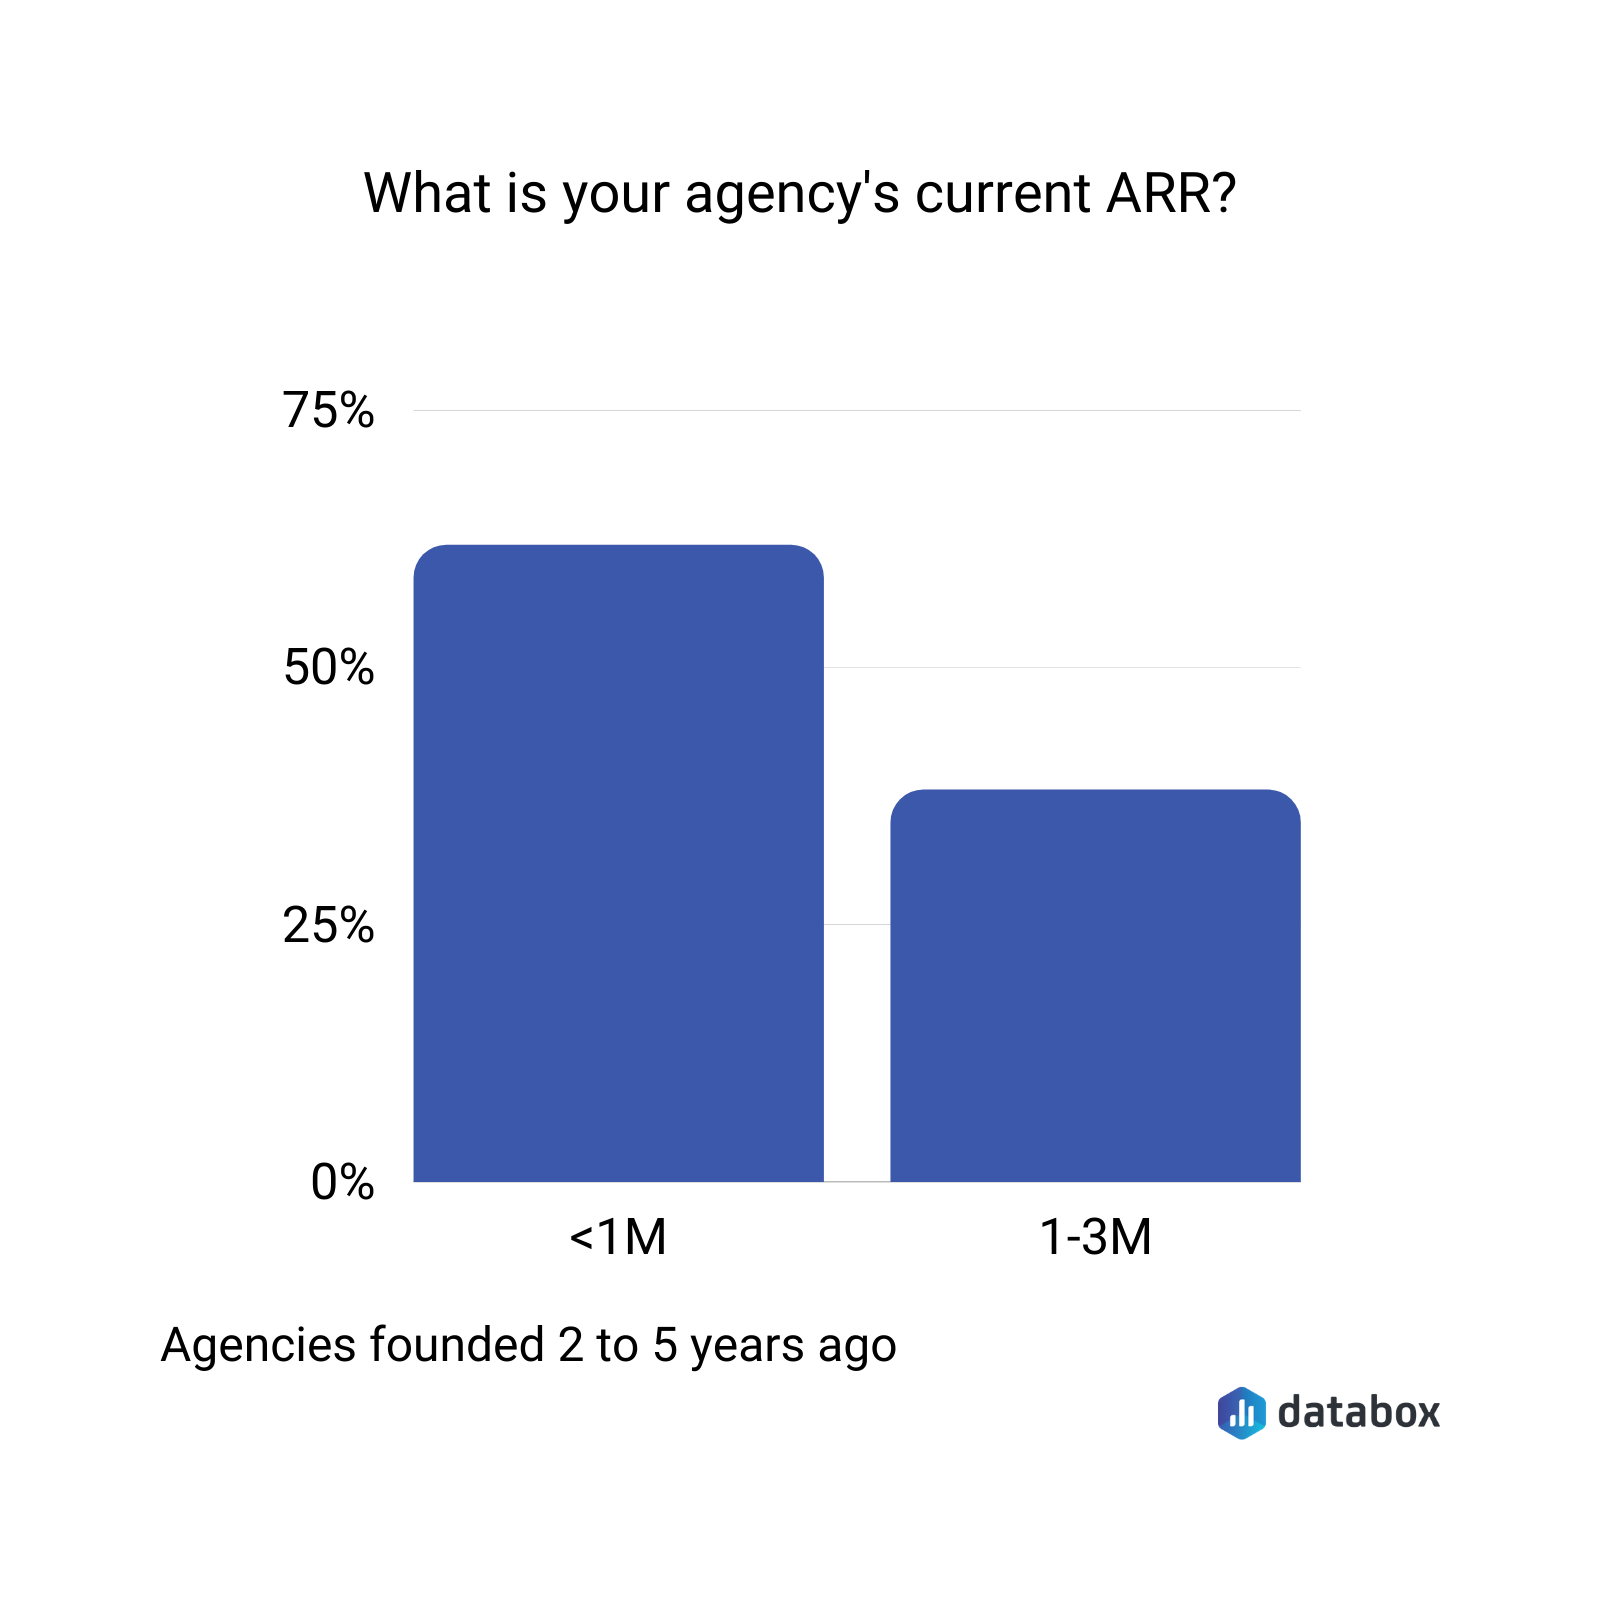 what is tour agency's current ARR?